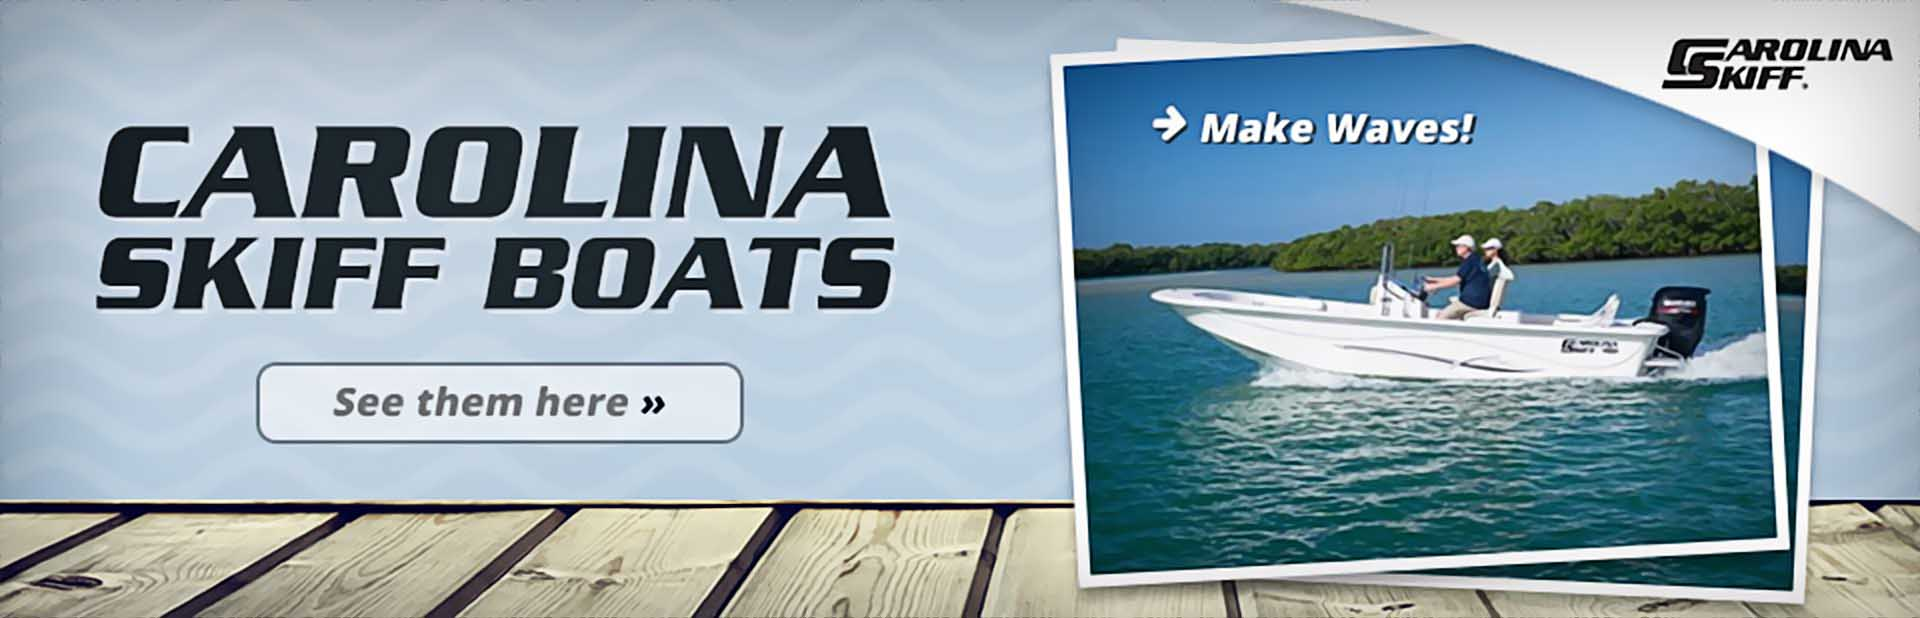 Carolina Skiff Boats: Click here to view the showcase!